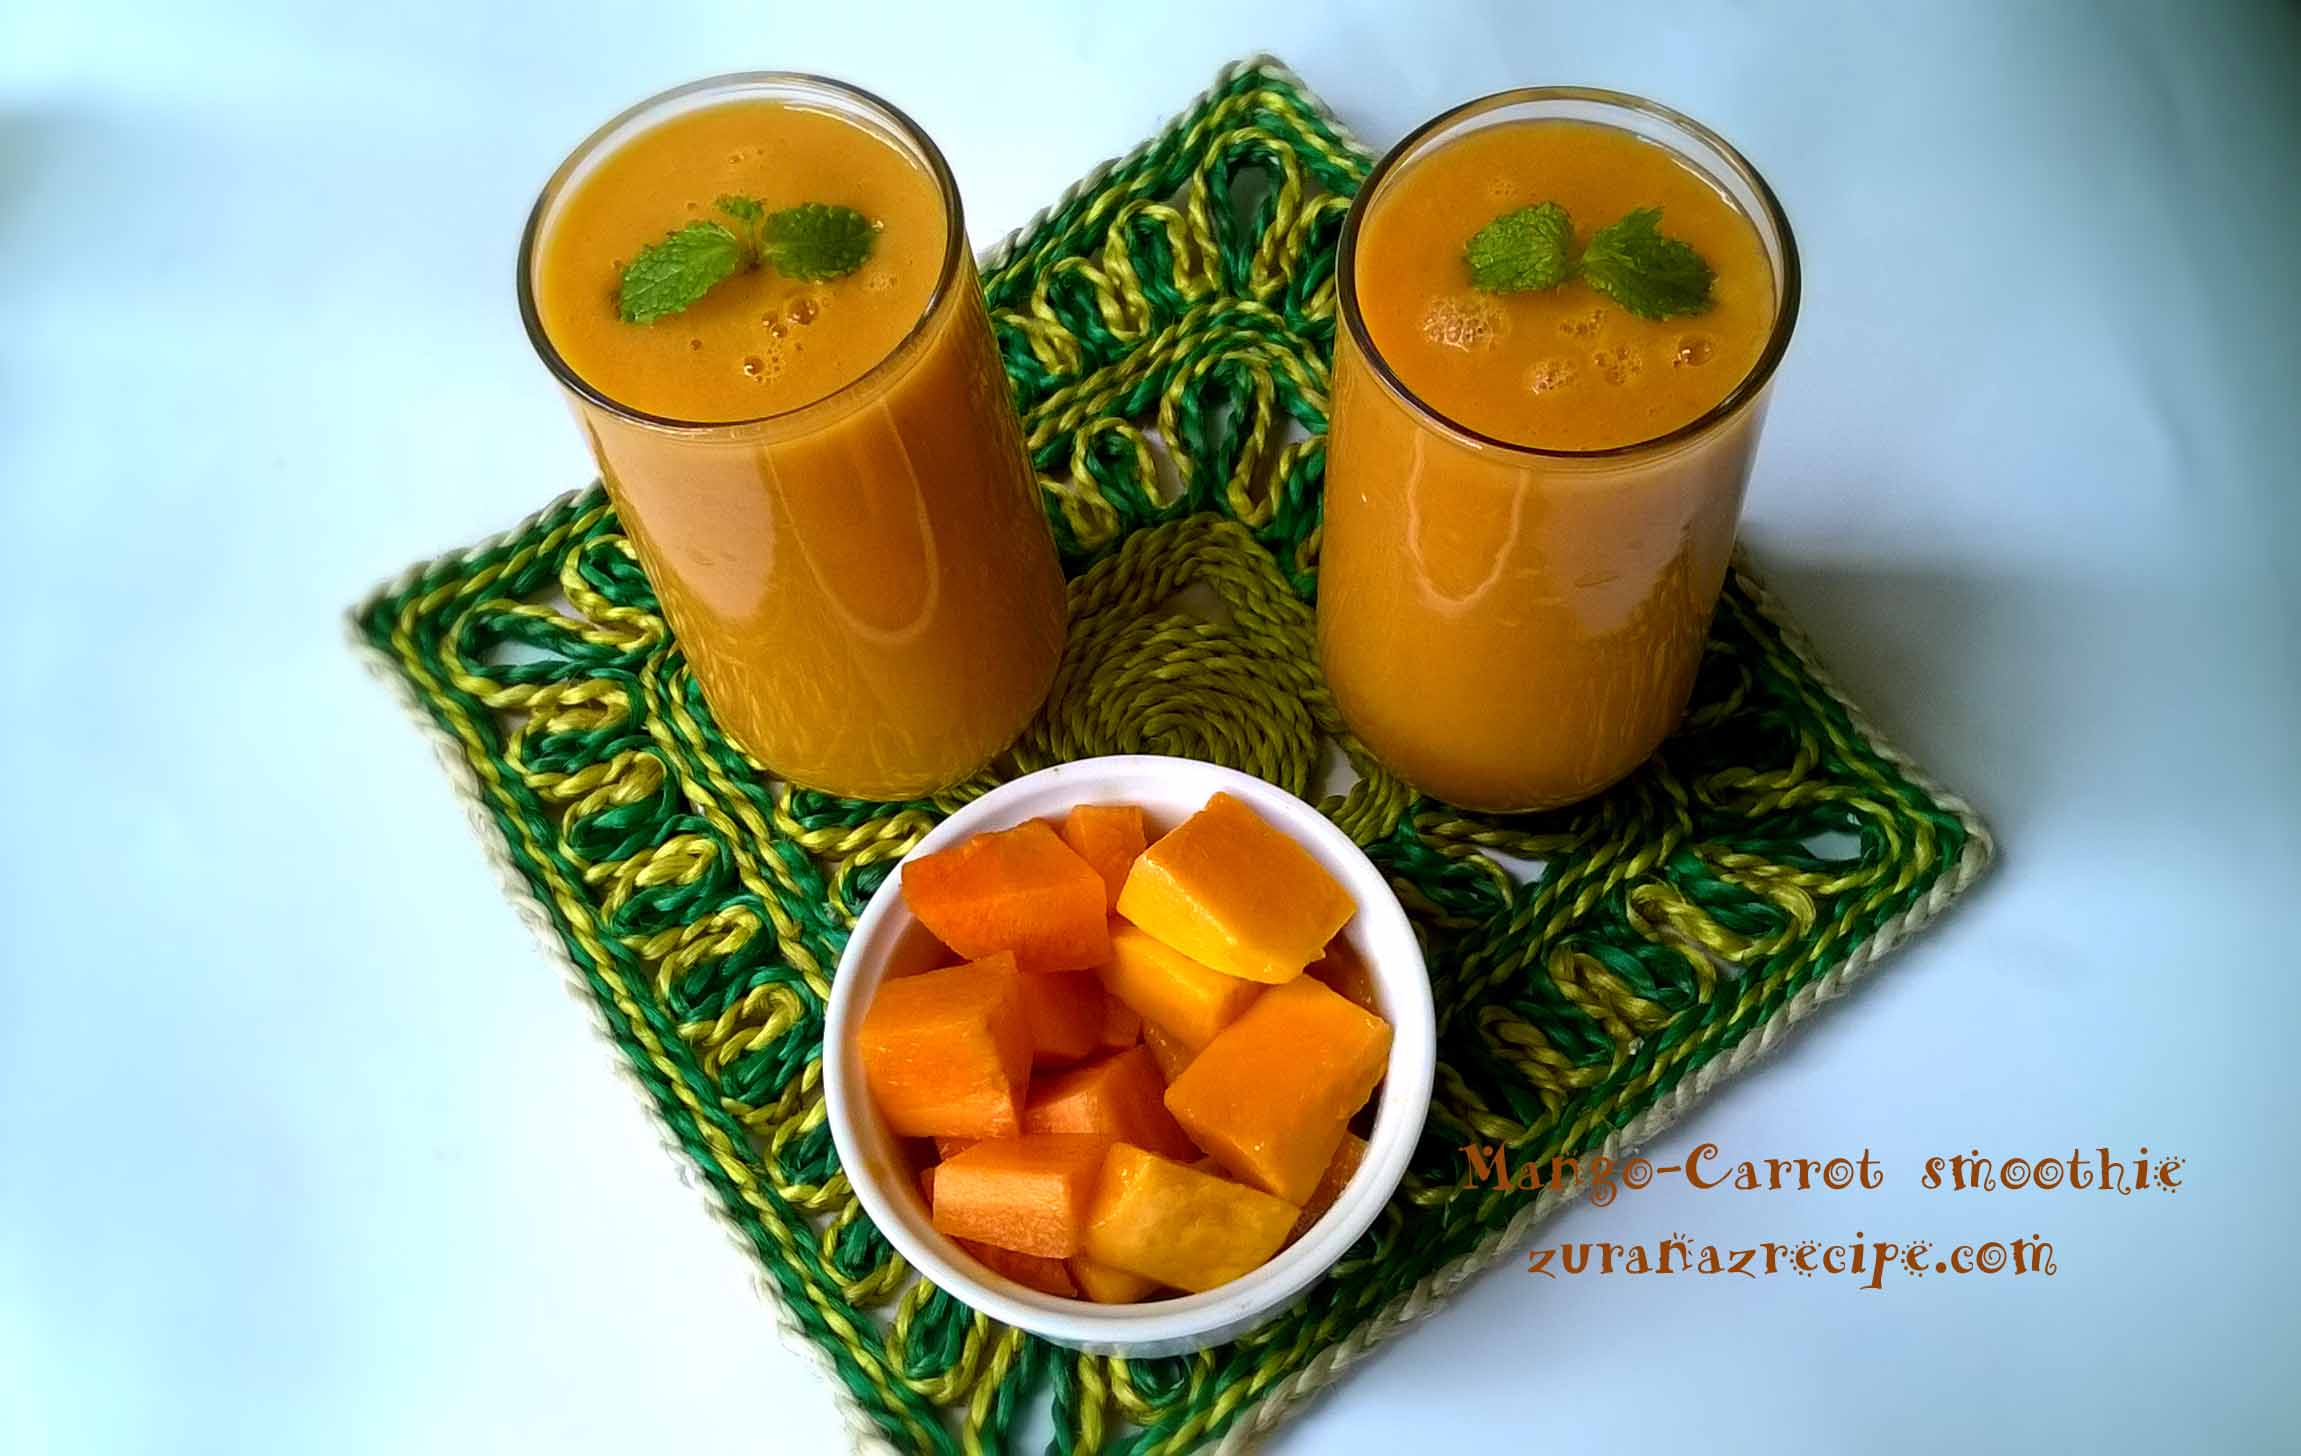 Mango-Carrot smoothie